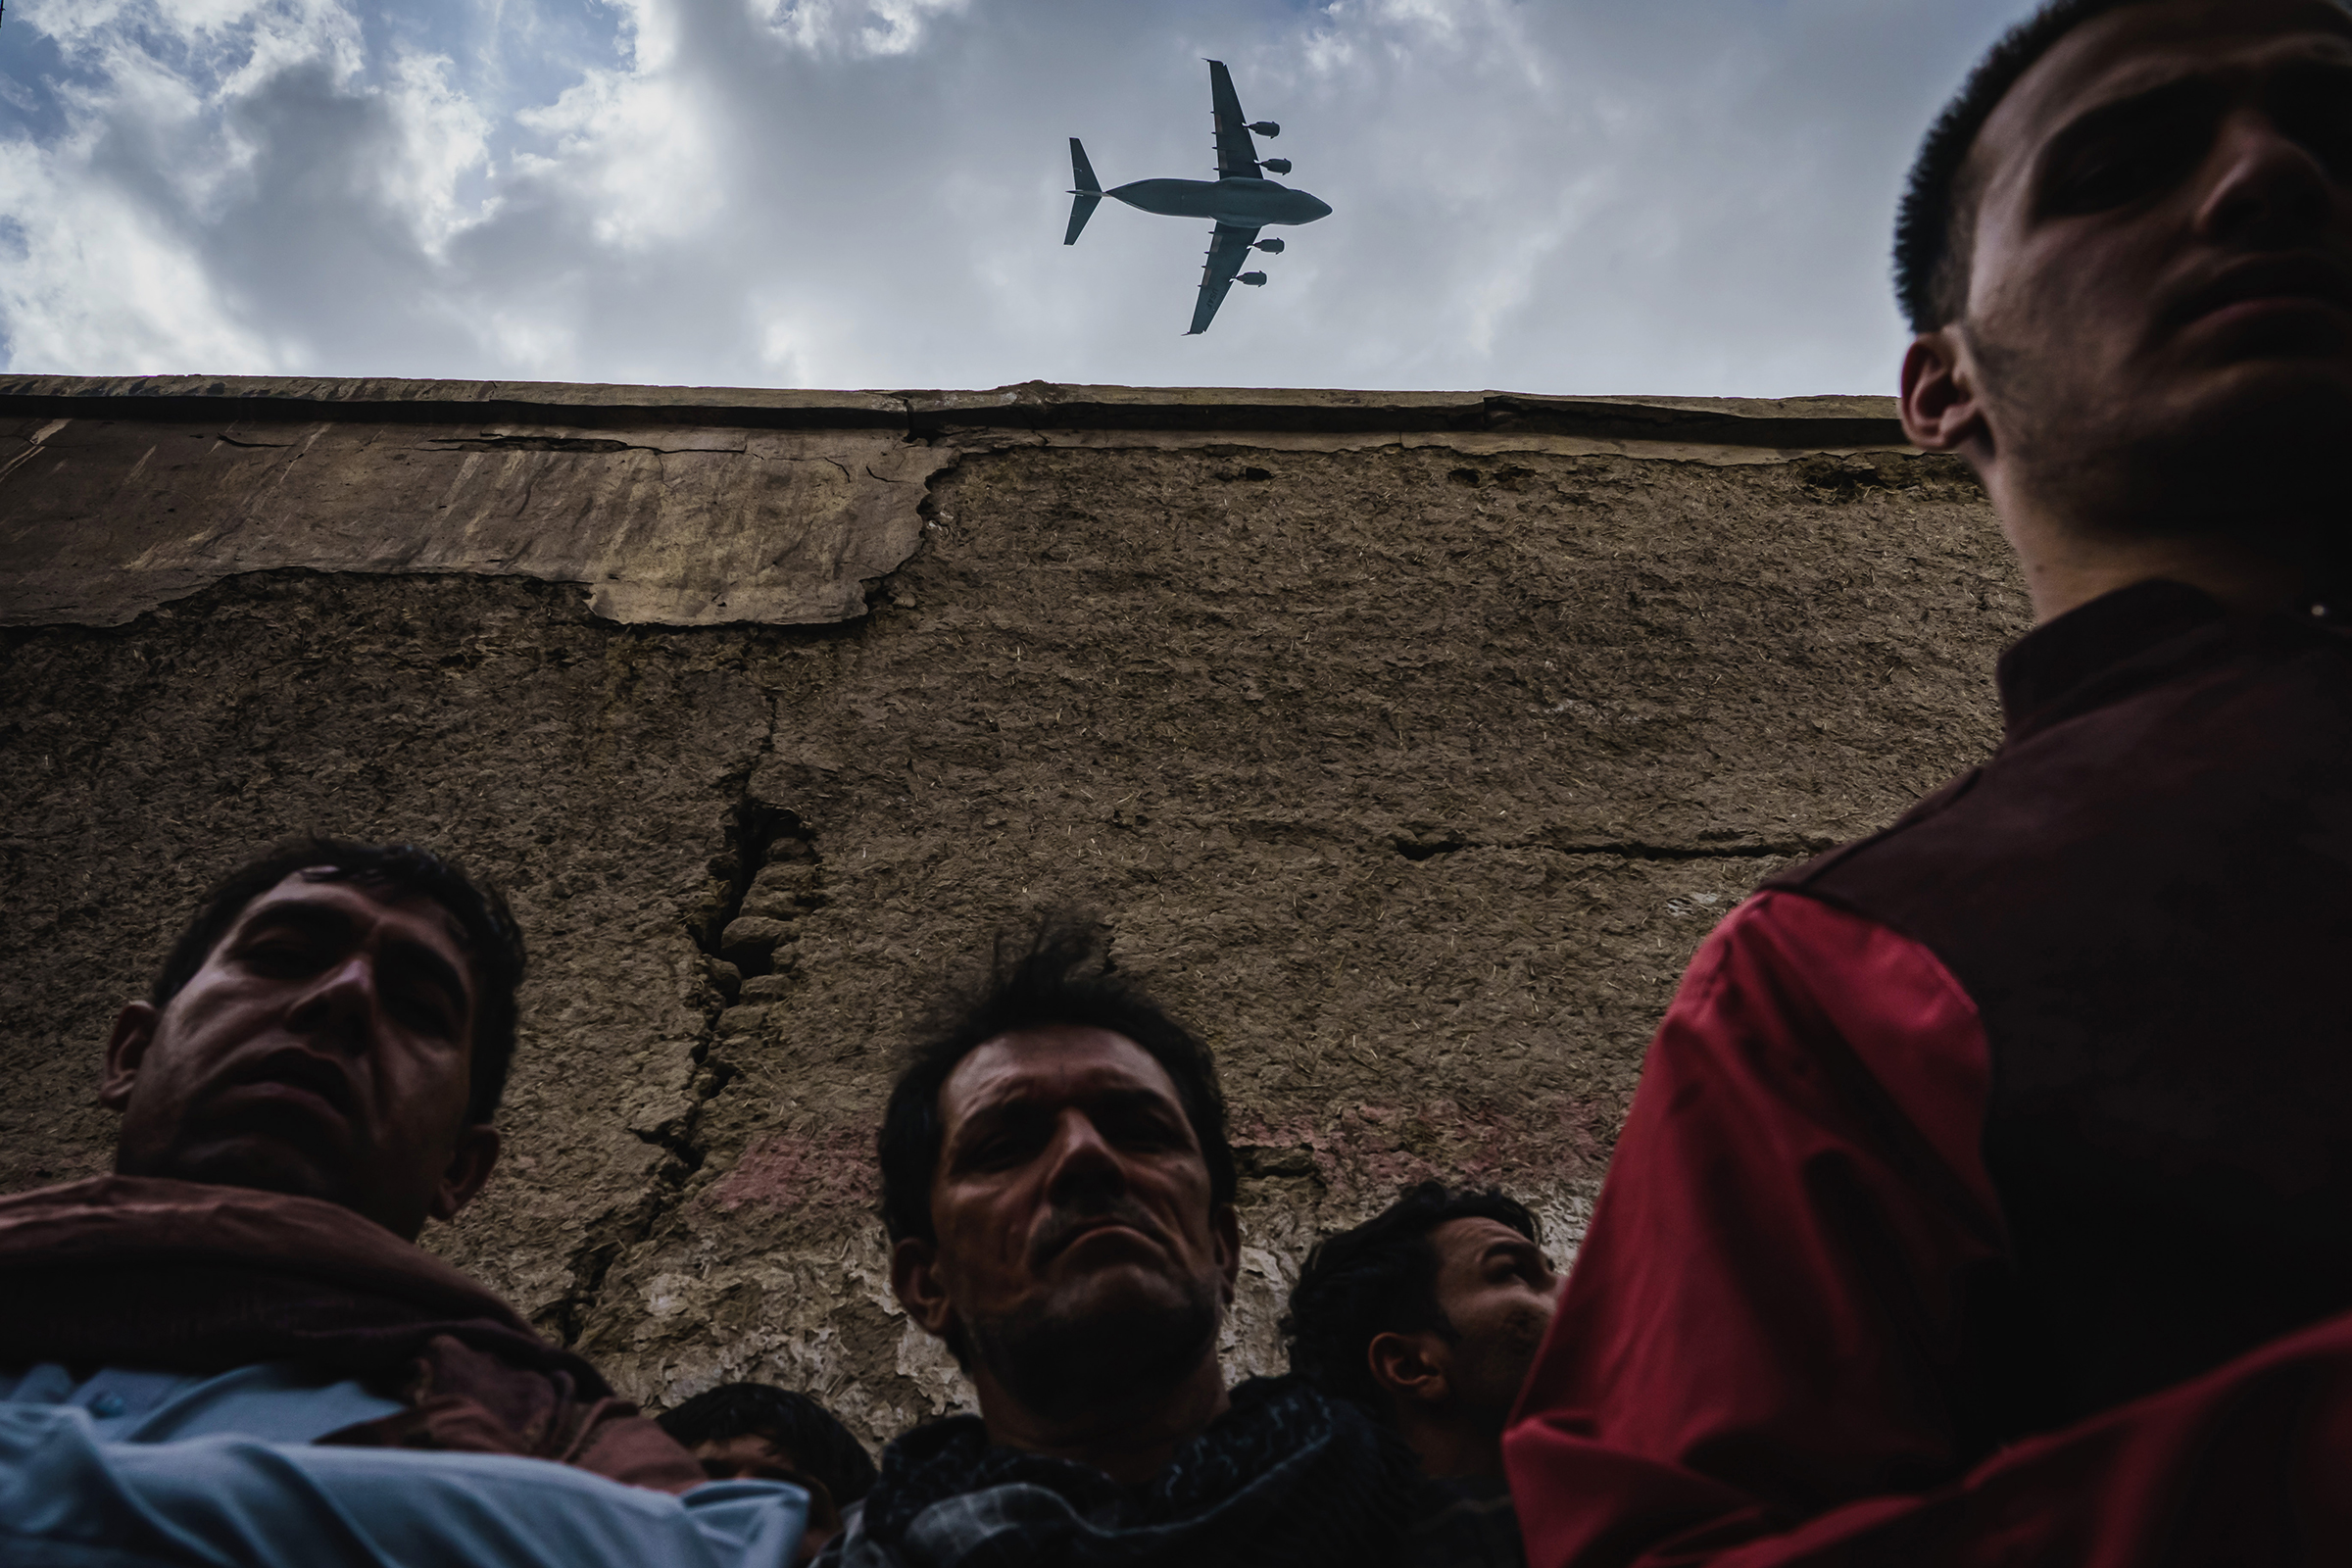 A military transport plane flies over relatives and neighbors of the Ahmadi family, who had gathered around the vehicle that was destroyed, on Aug. 30.